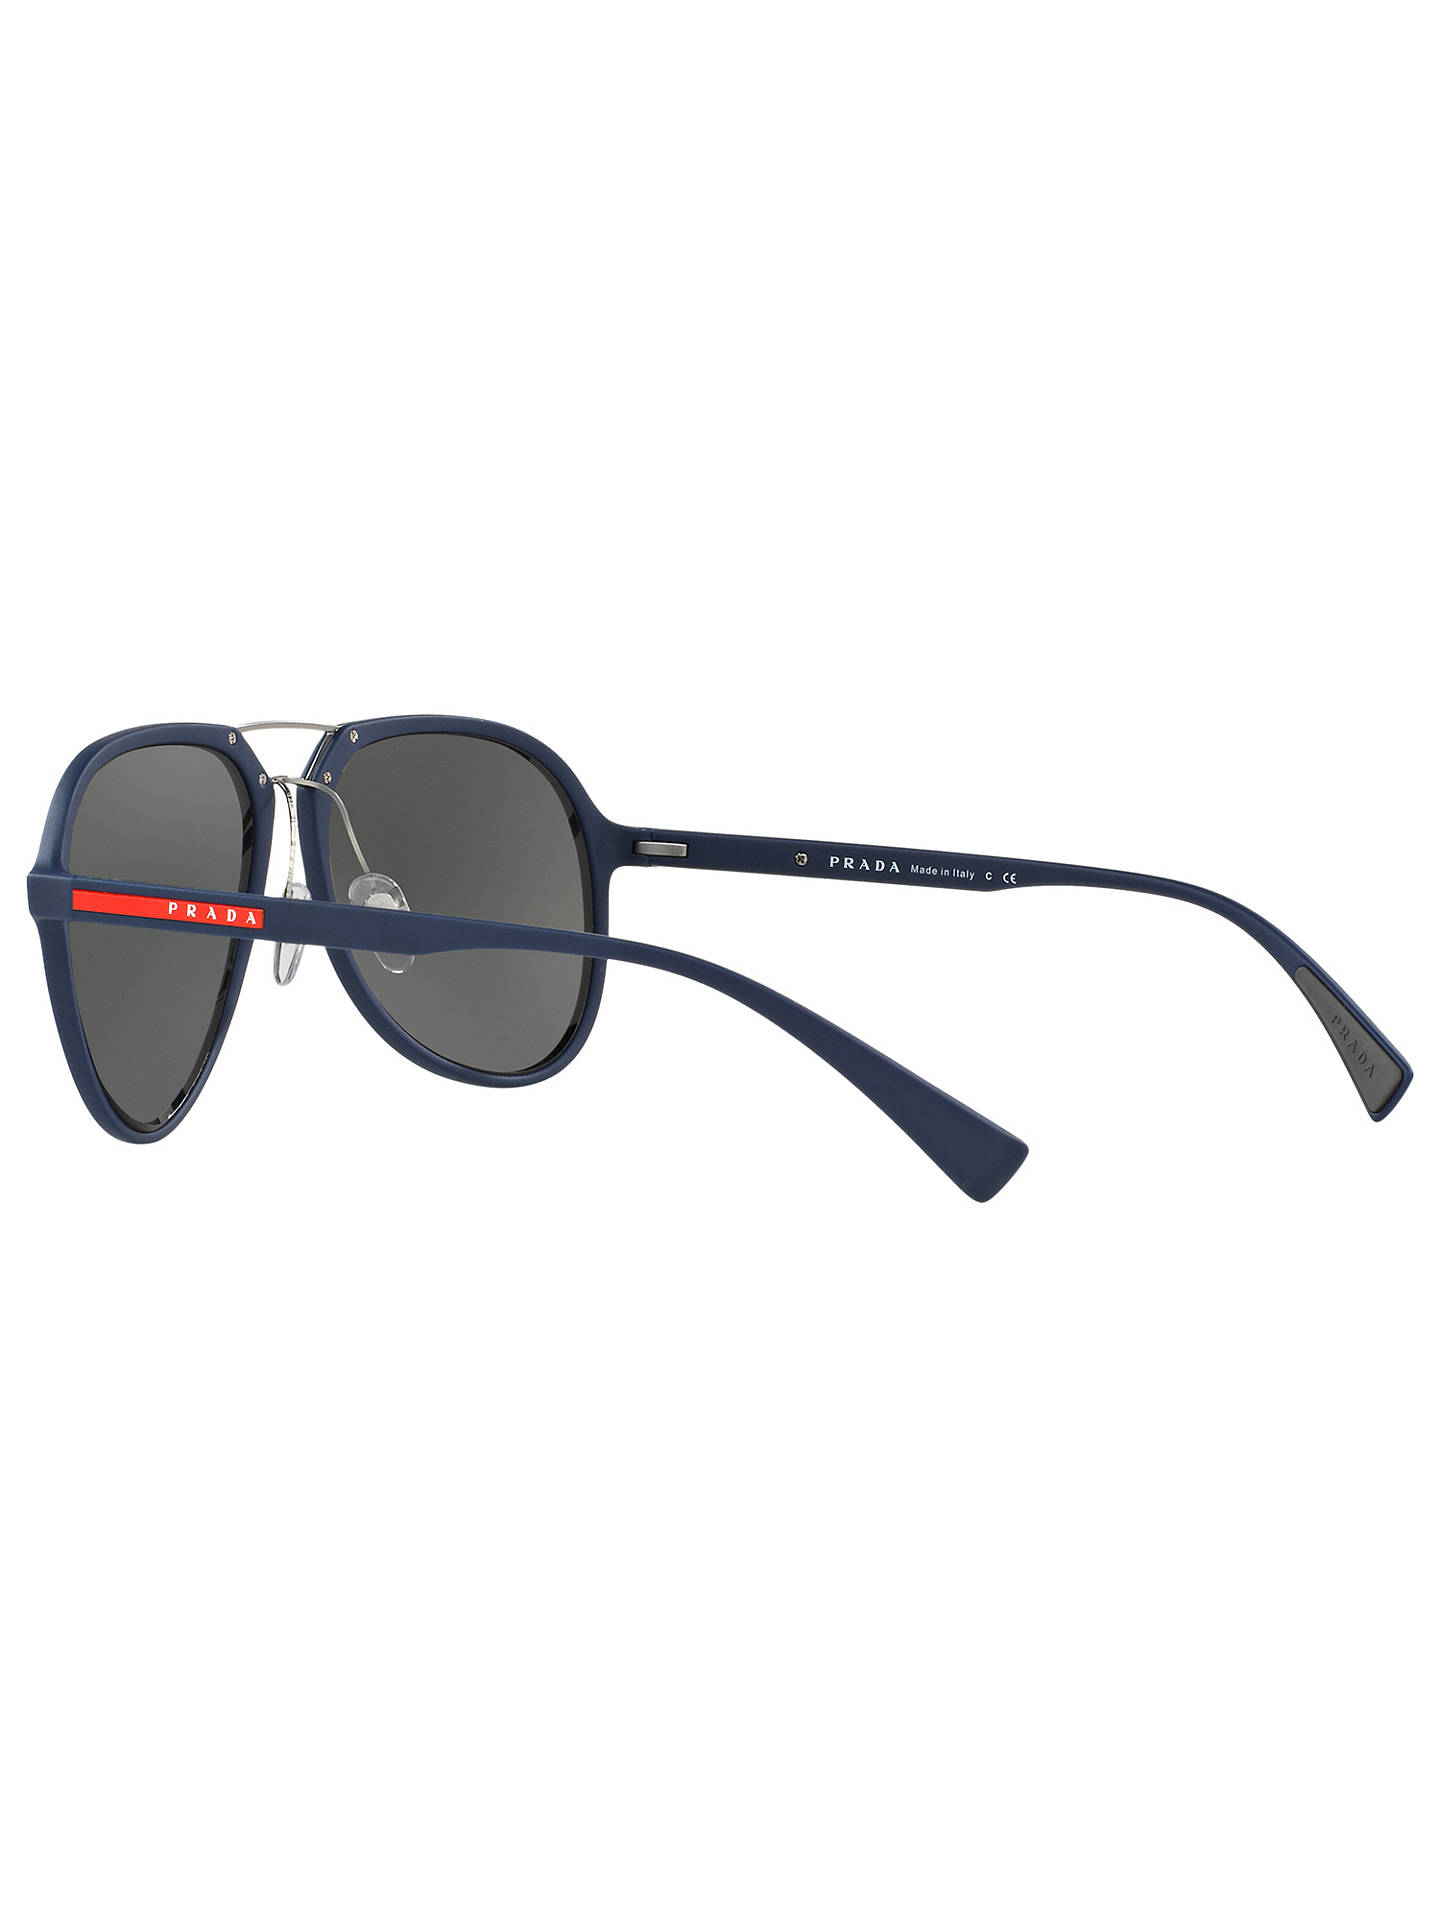 2a85aa5f31 ... clearance buyprada linea rossa pr05rs round framed sunglasses silver  online at johnlewis 4fc20 1bfd8